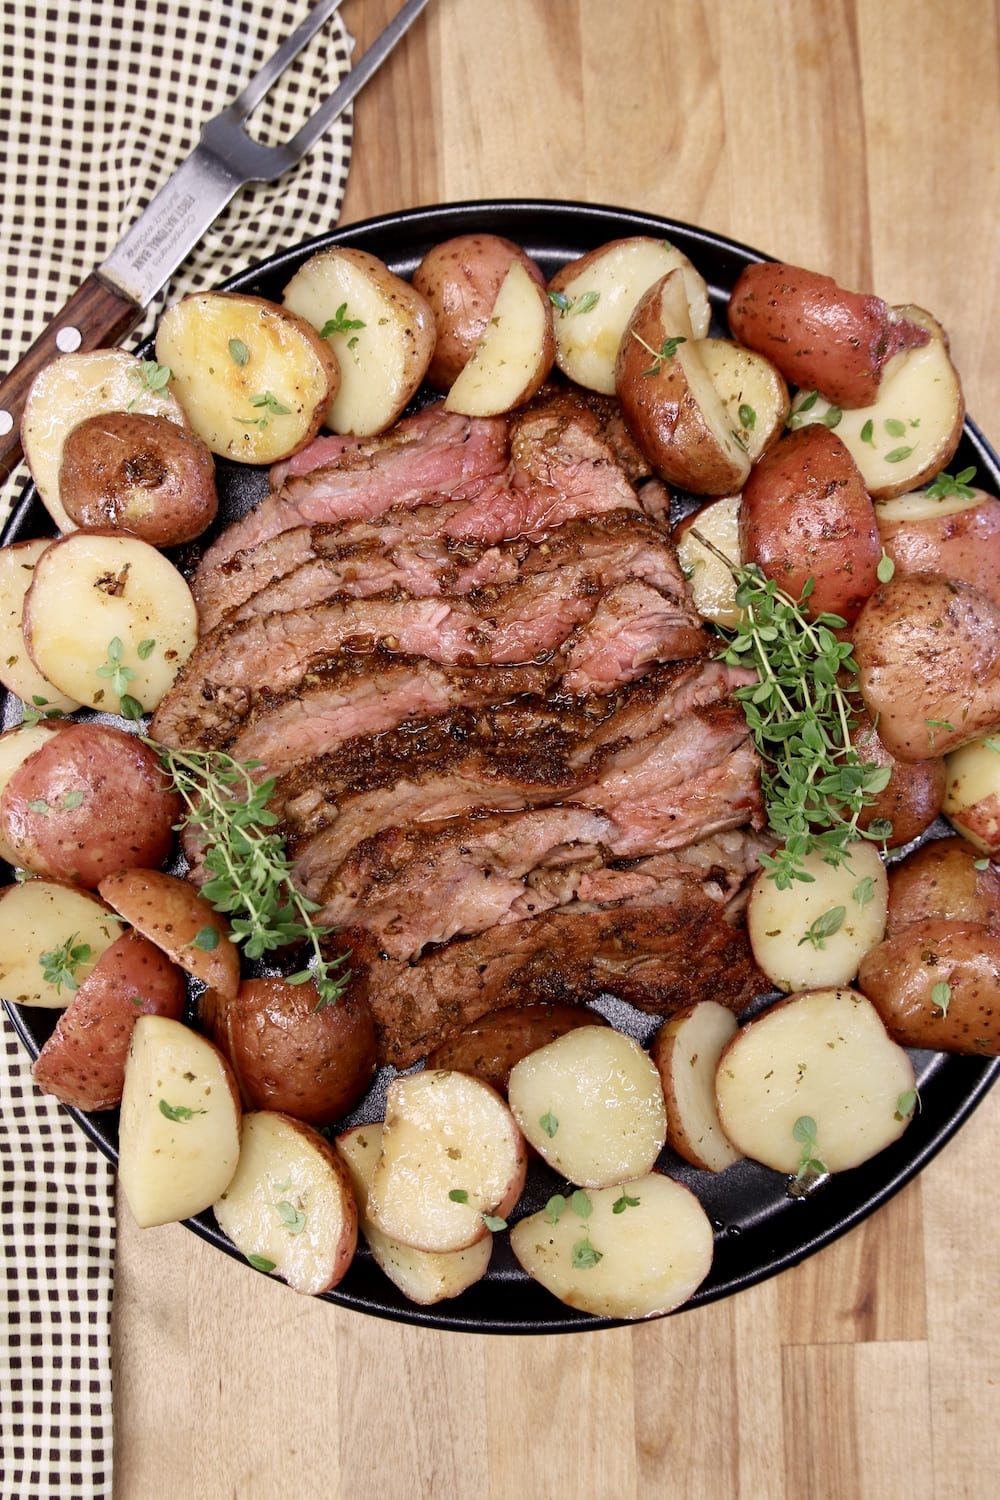 sliced roast beef on a platter with baby potatoes - overhead view